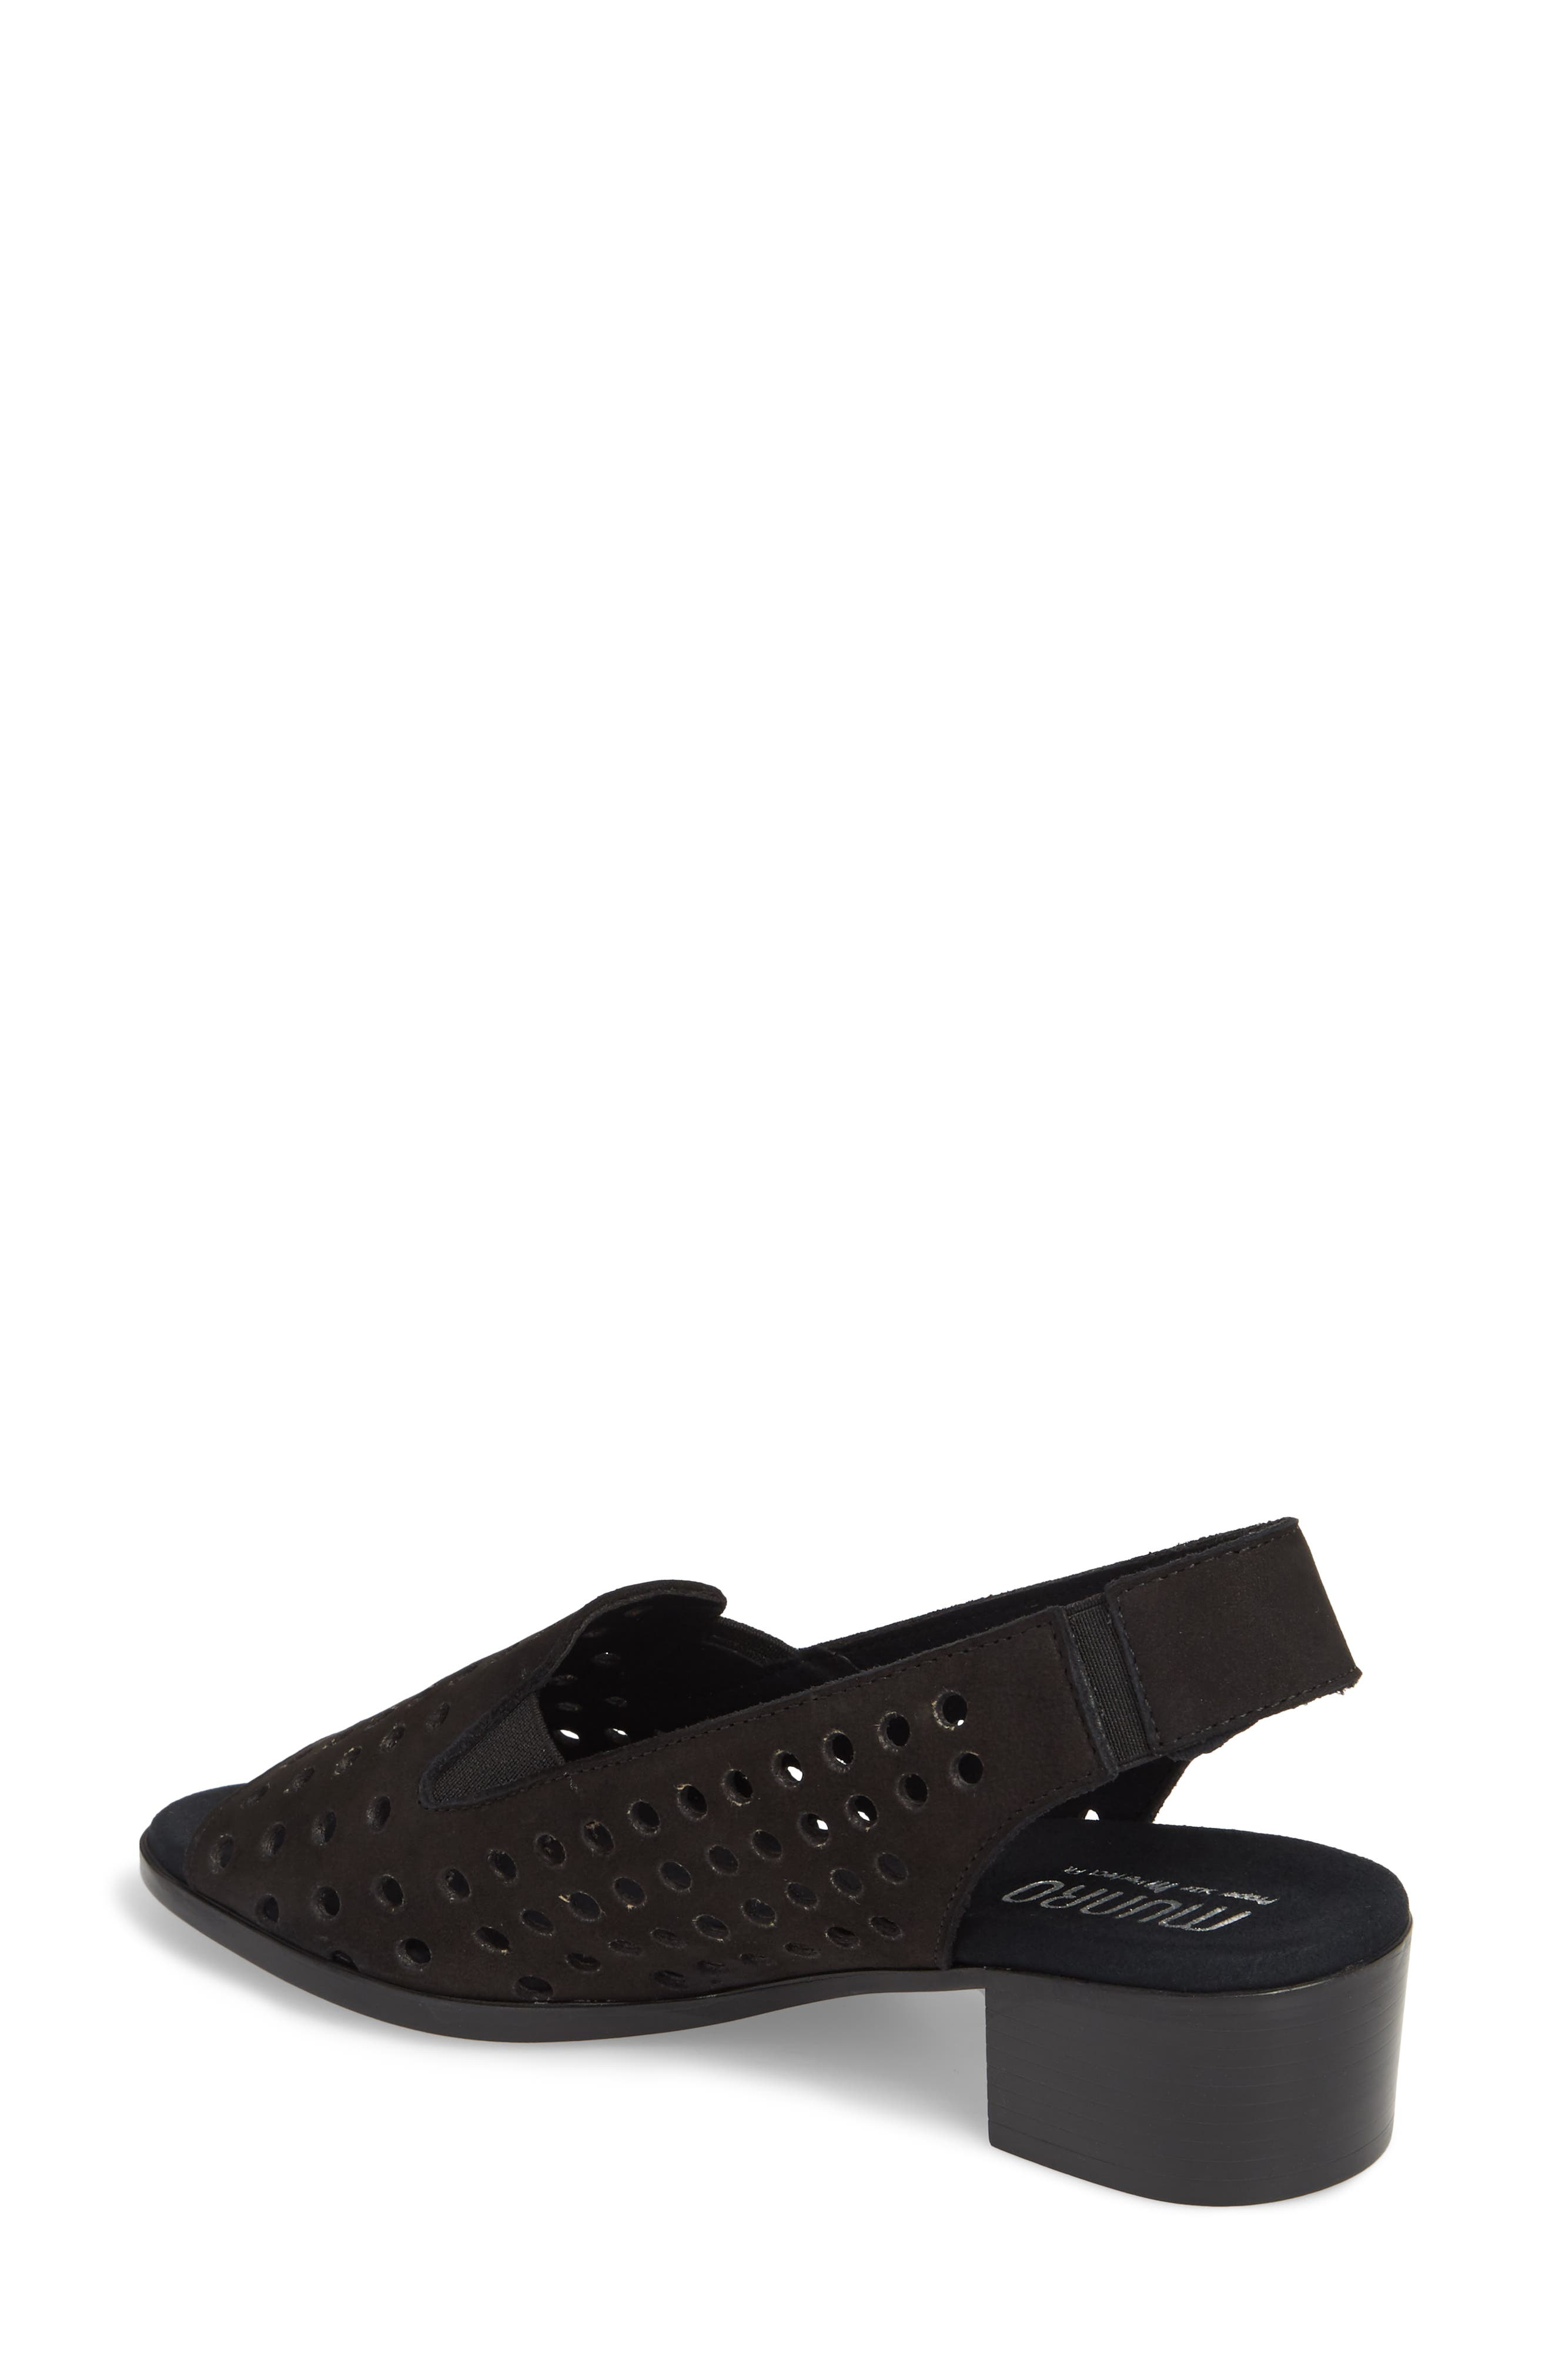 Mickee Slingback Sandal,                             Alternate thumbnail 2, color,                             BLACK NUBUCK LEATHER